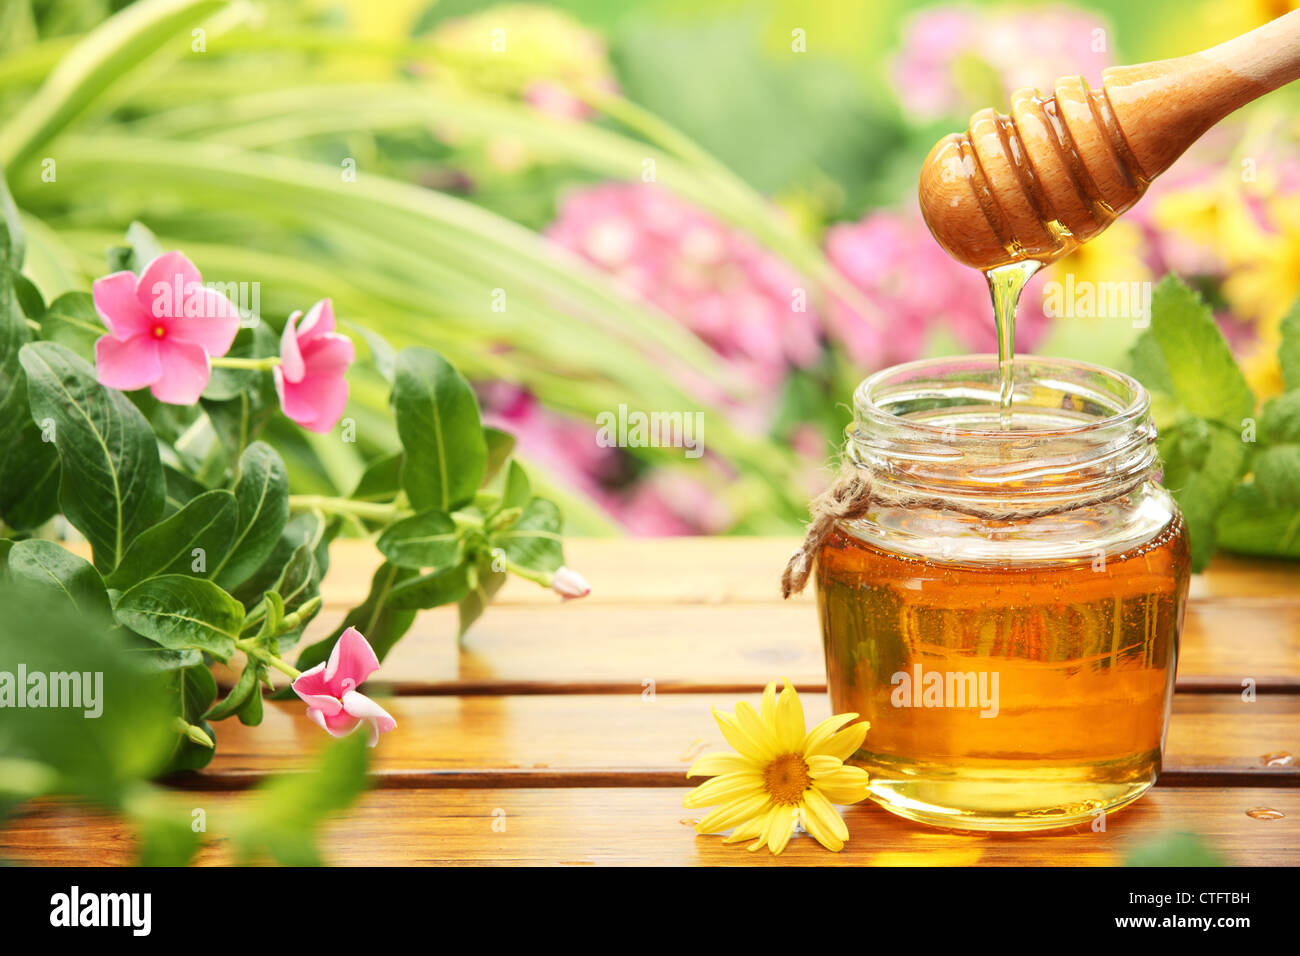 Honey in glass jars with flowers background. - Stock Image